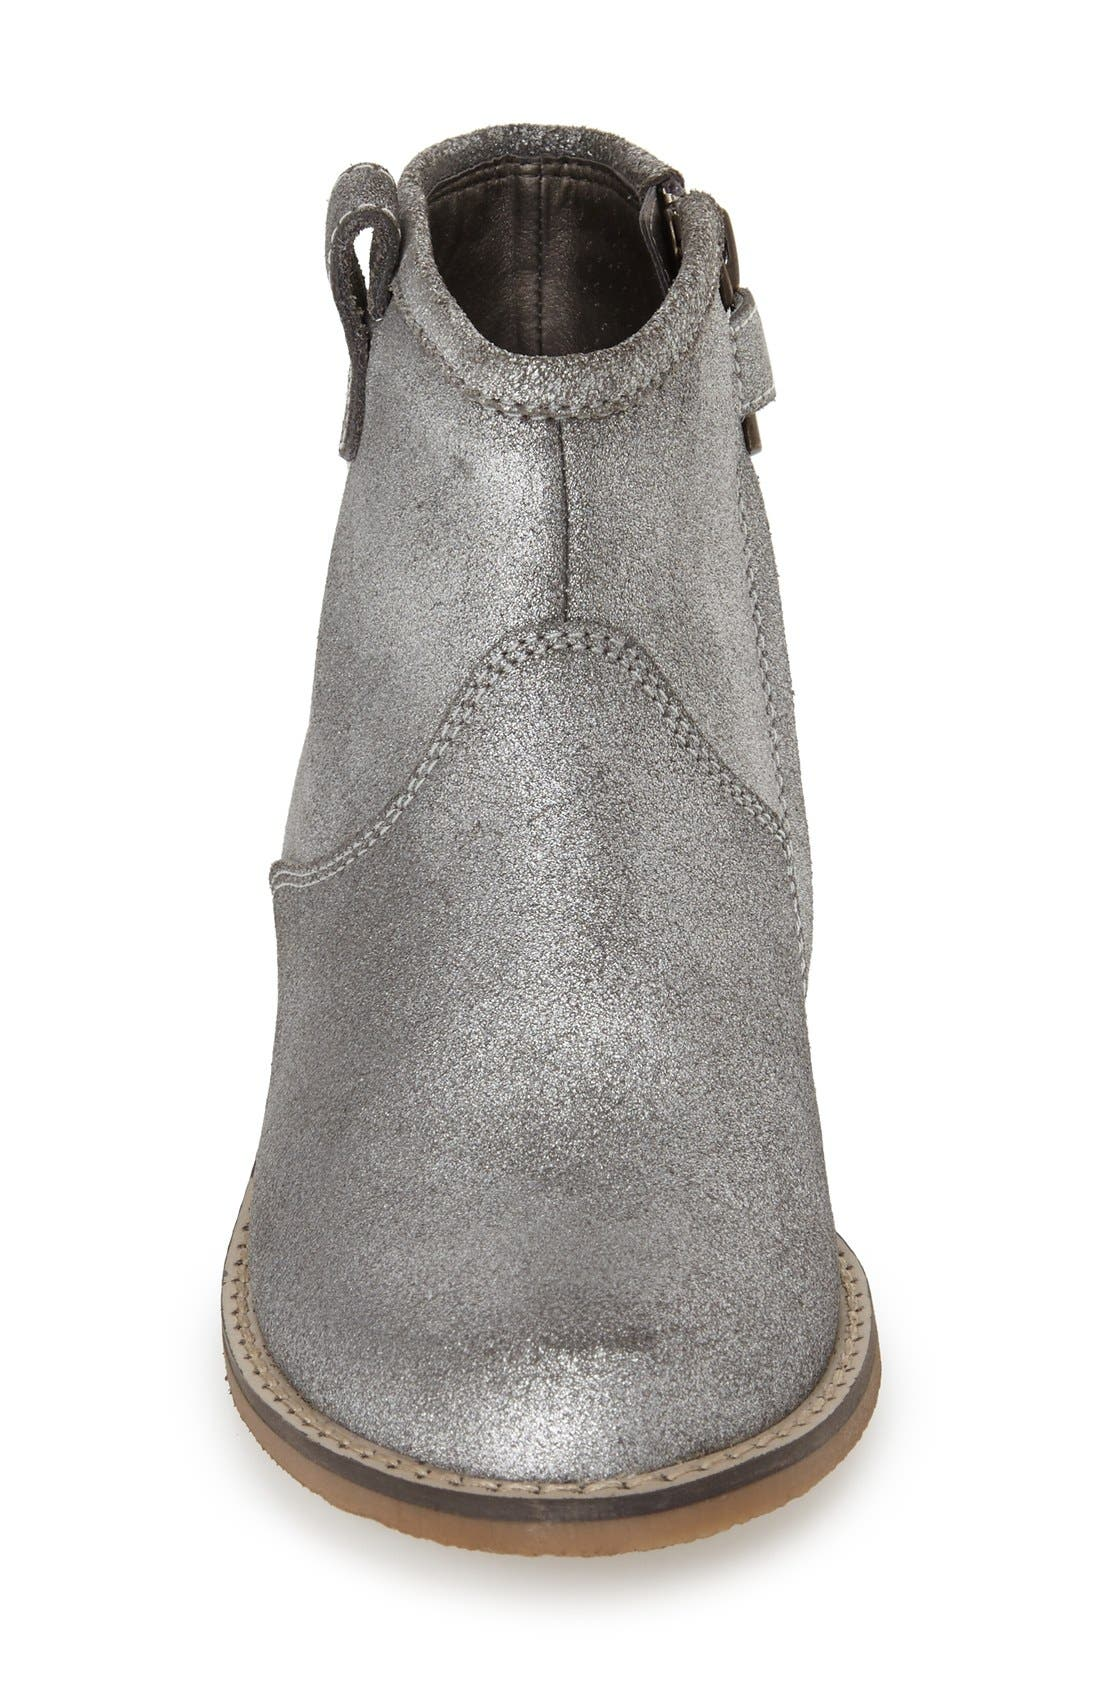 Peek 'Birch' Leather Ankle Boot,                             Alternate thumbnail 4, color,                             040